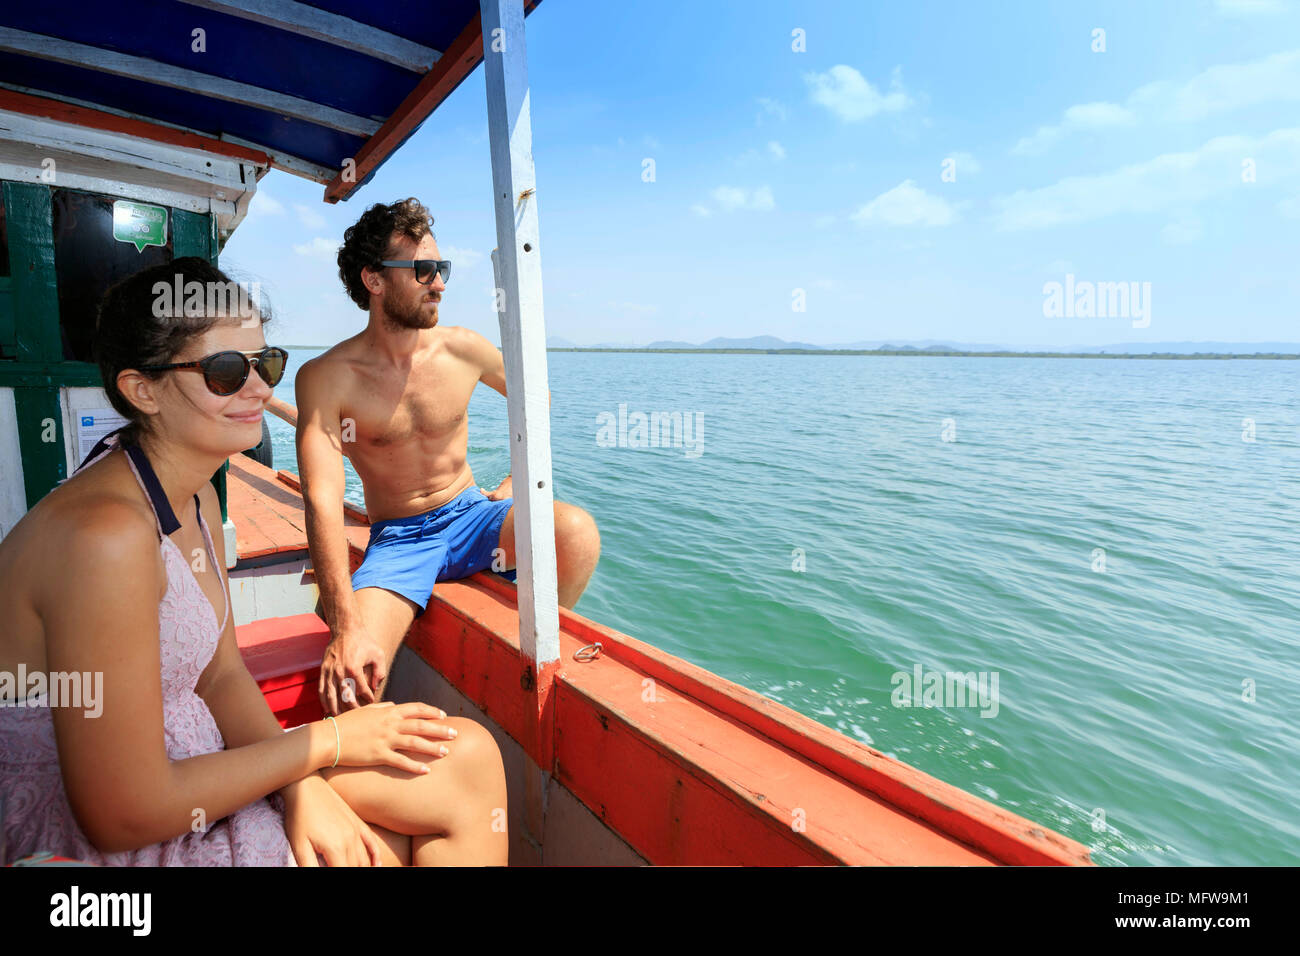 Young travelers on a boat to the islands of Cambodia, looking out over the water on a sunny day. Copy space to the right for a double-page spread. - Stock Image